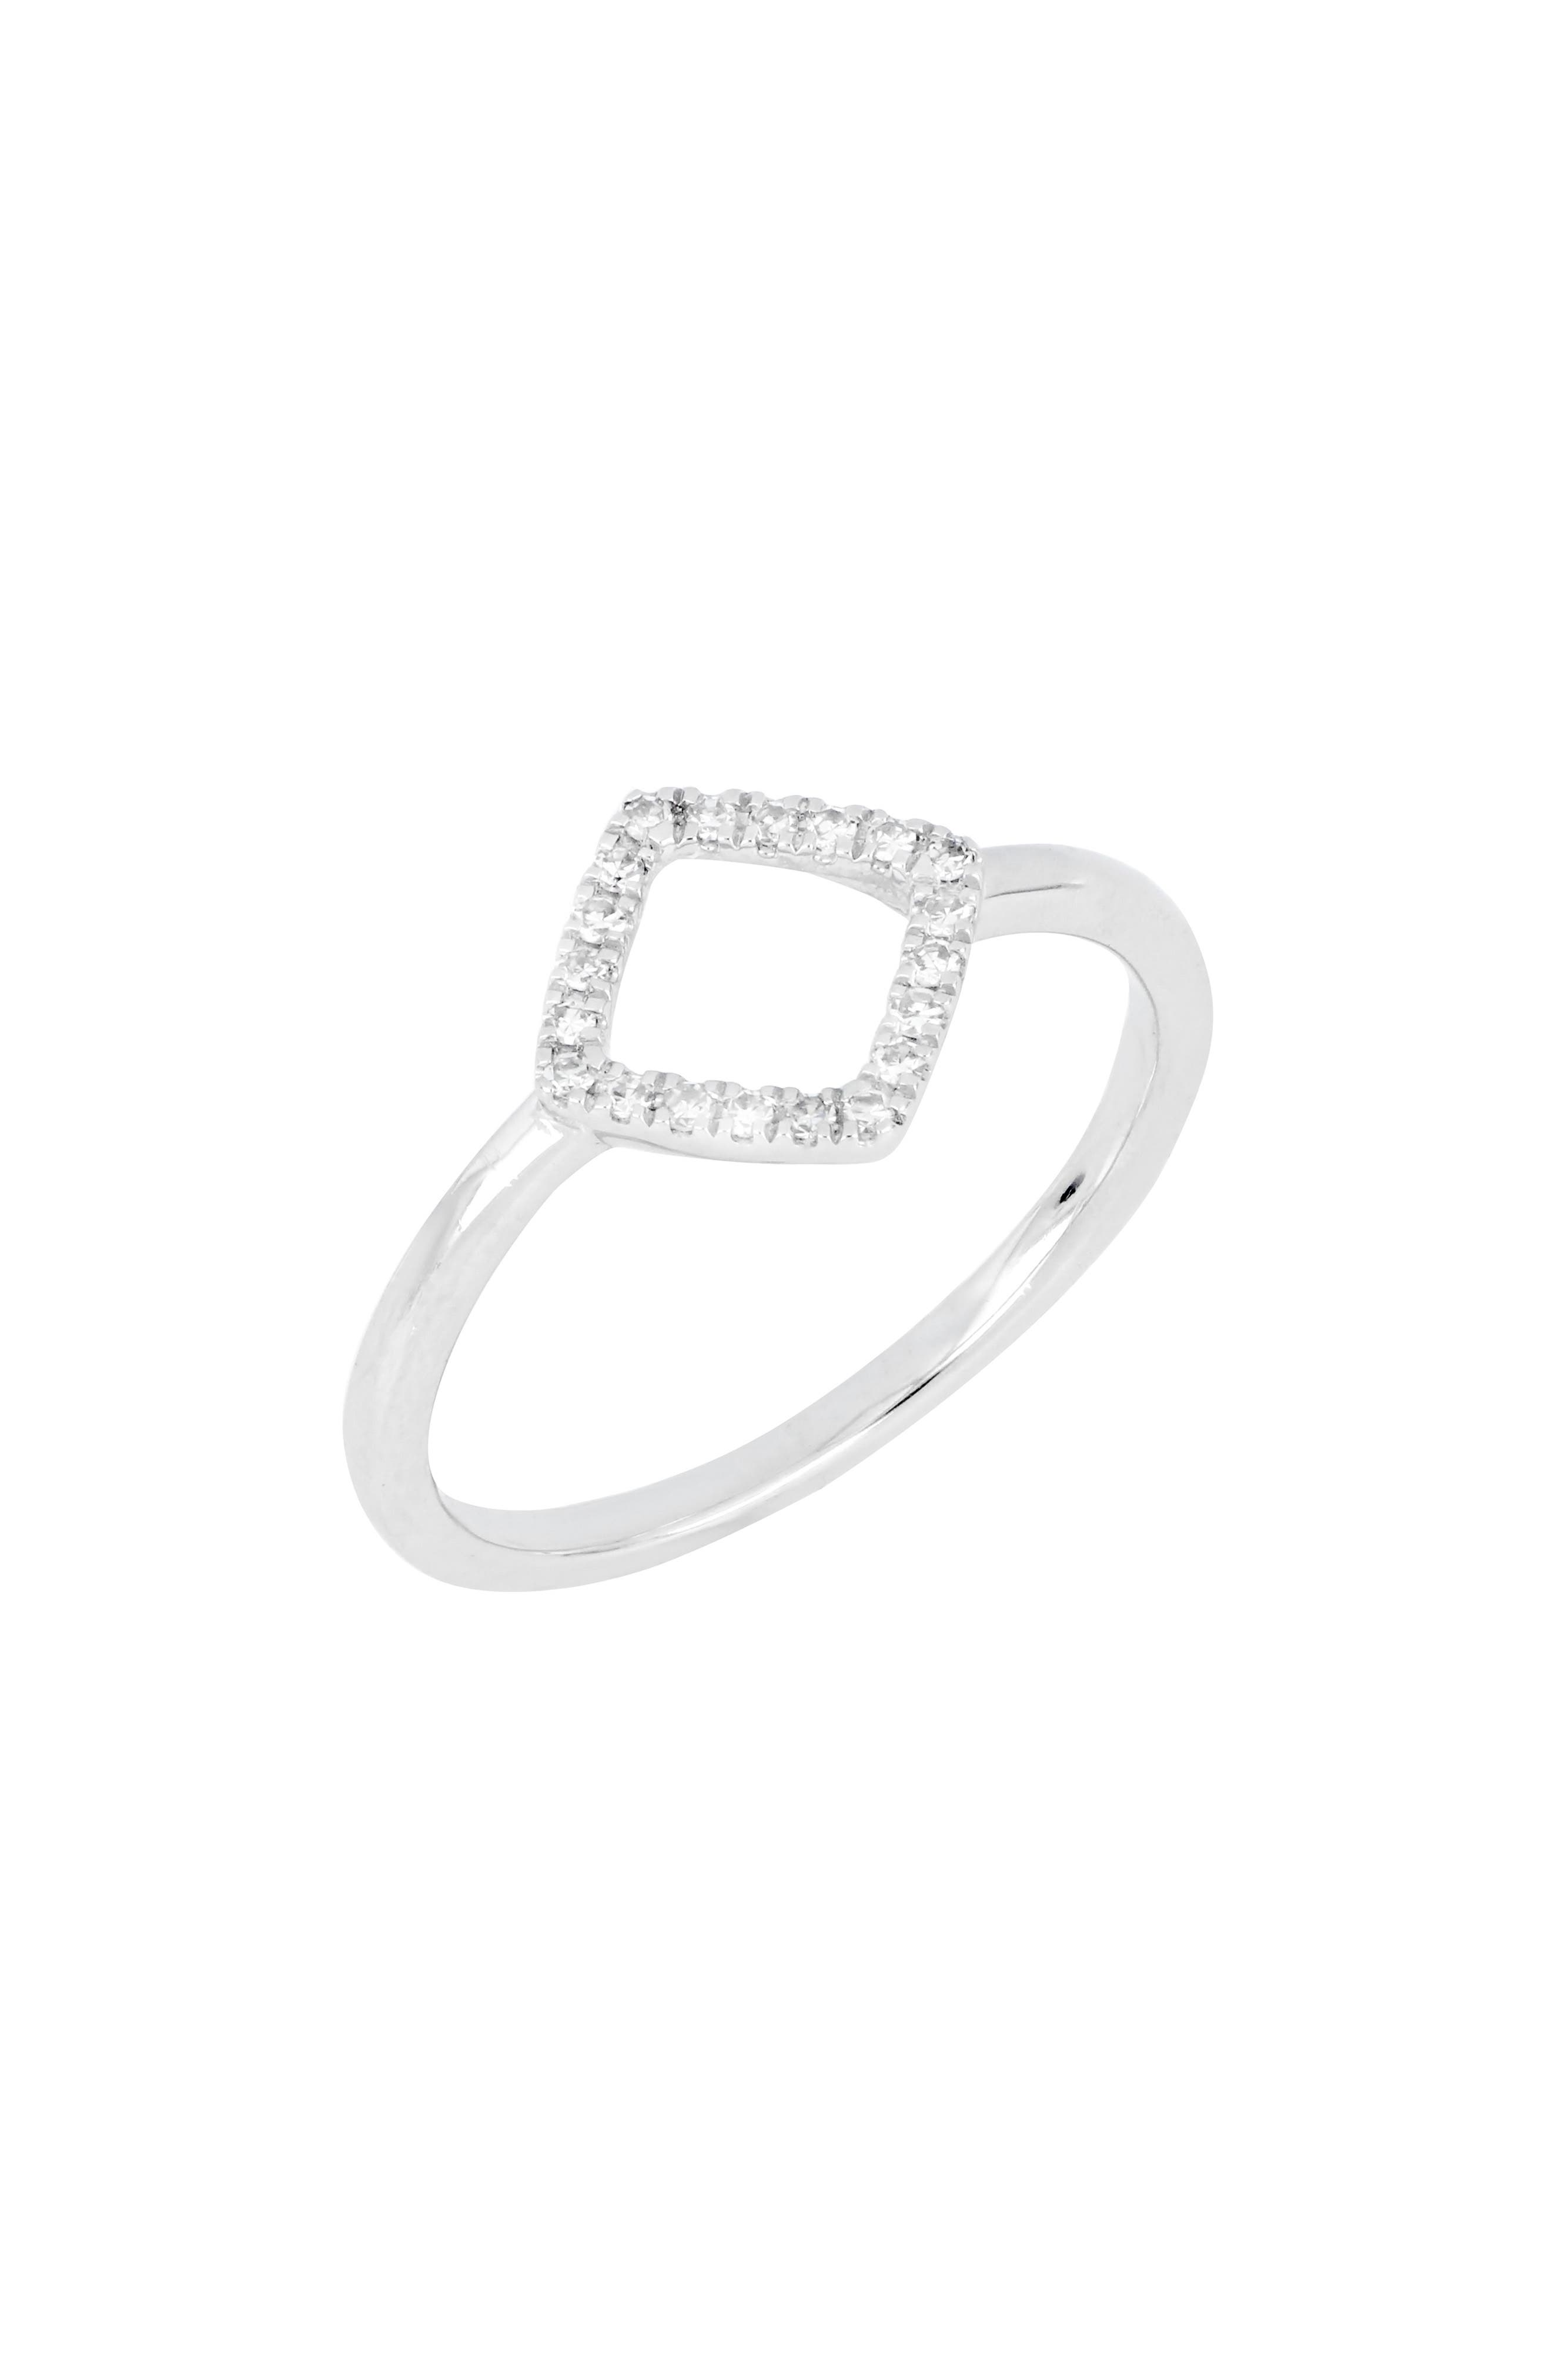 Carrière Diamond Open Square Stacking Ring,                             Main thumbnail 1, color,                             SILVER/ DIAMOND